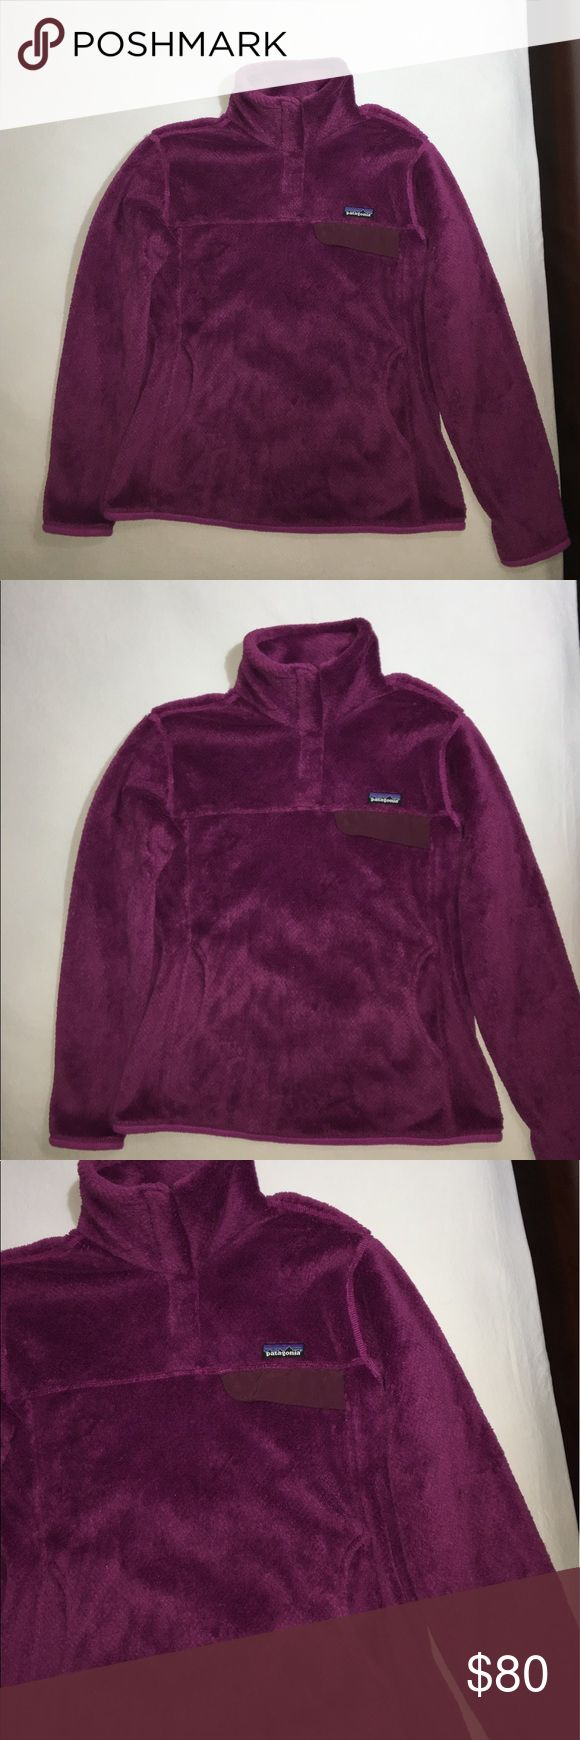 Patagonia sweater In Good Condition. Patagonia Sweaters